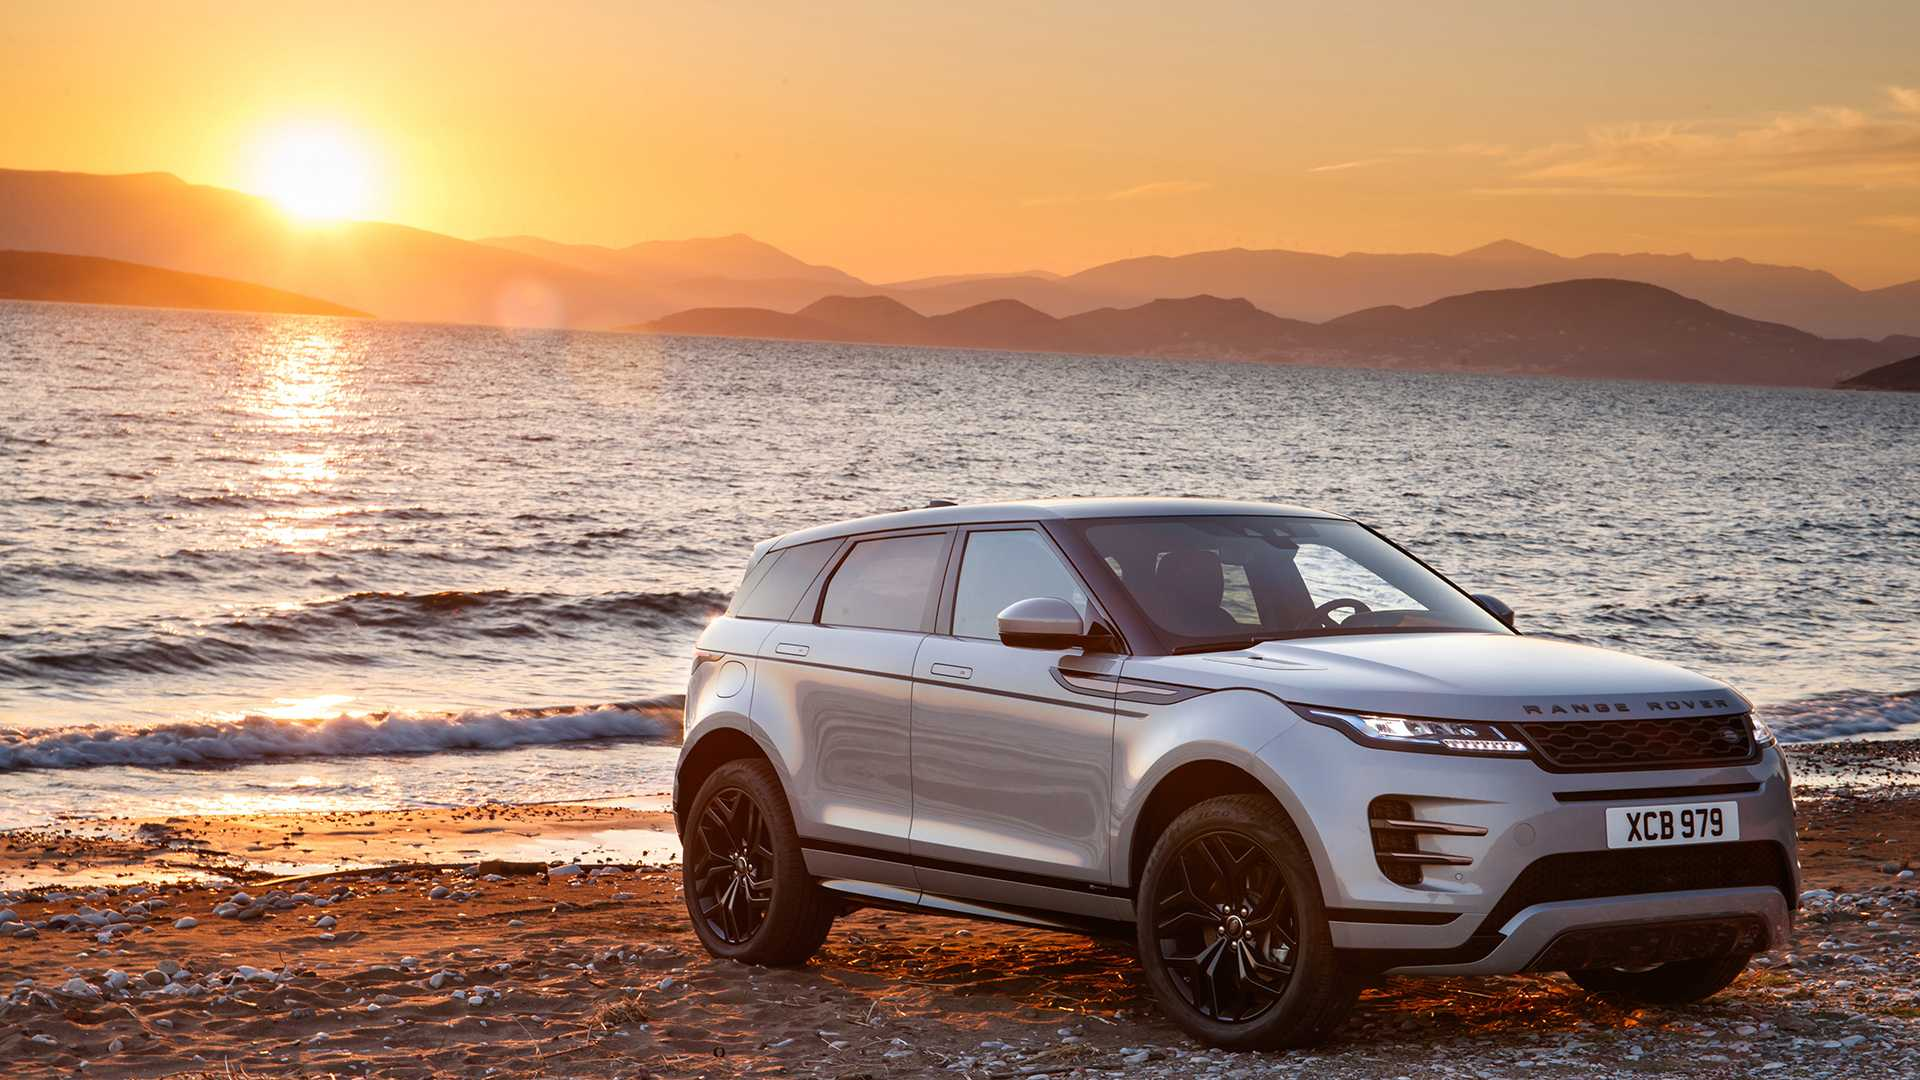 Best Ranges 2020 2020 Land Rover Range Rover Evoque: Best Images | Motor1.Photos